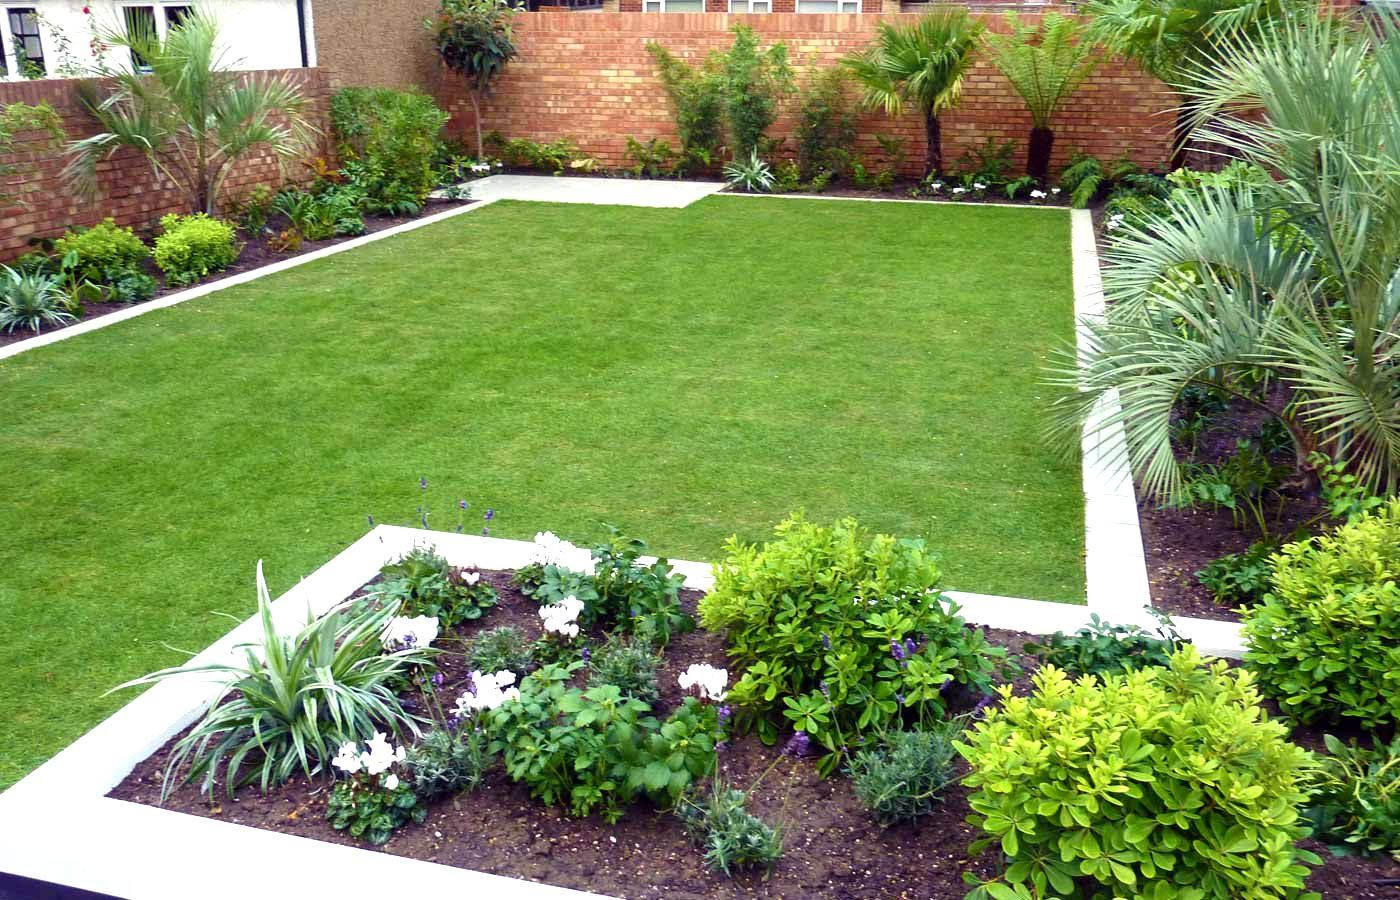 Simple garden designs no fret small garden design for Small garden design plans